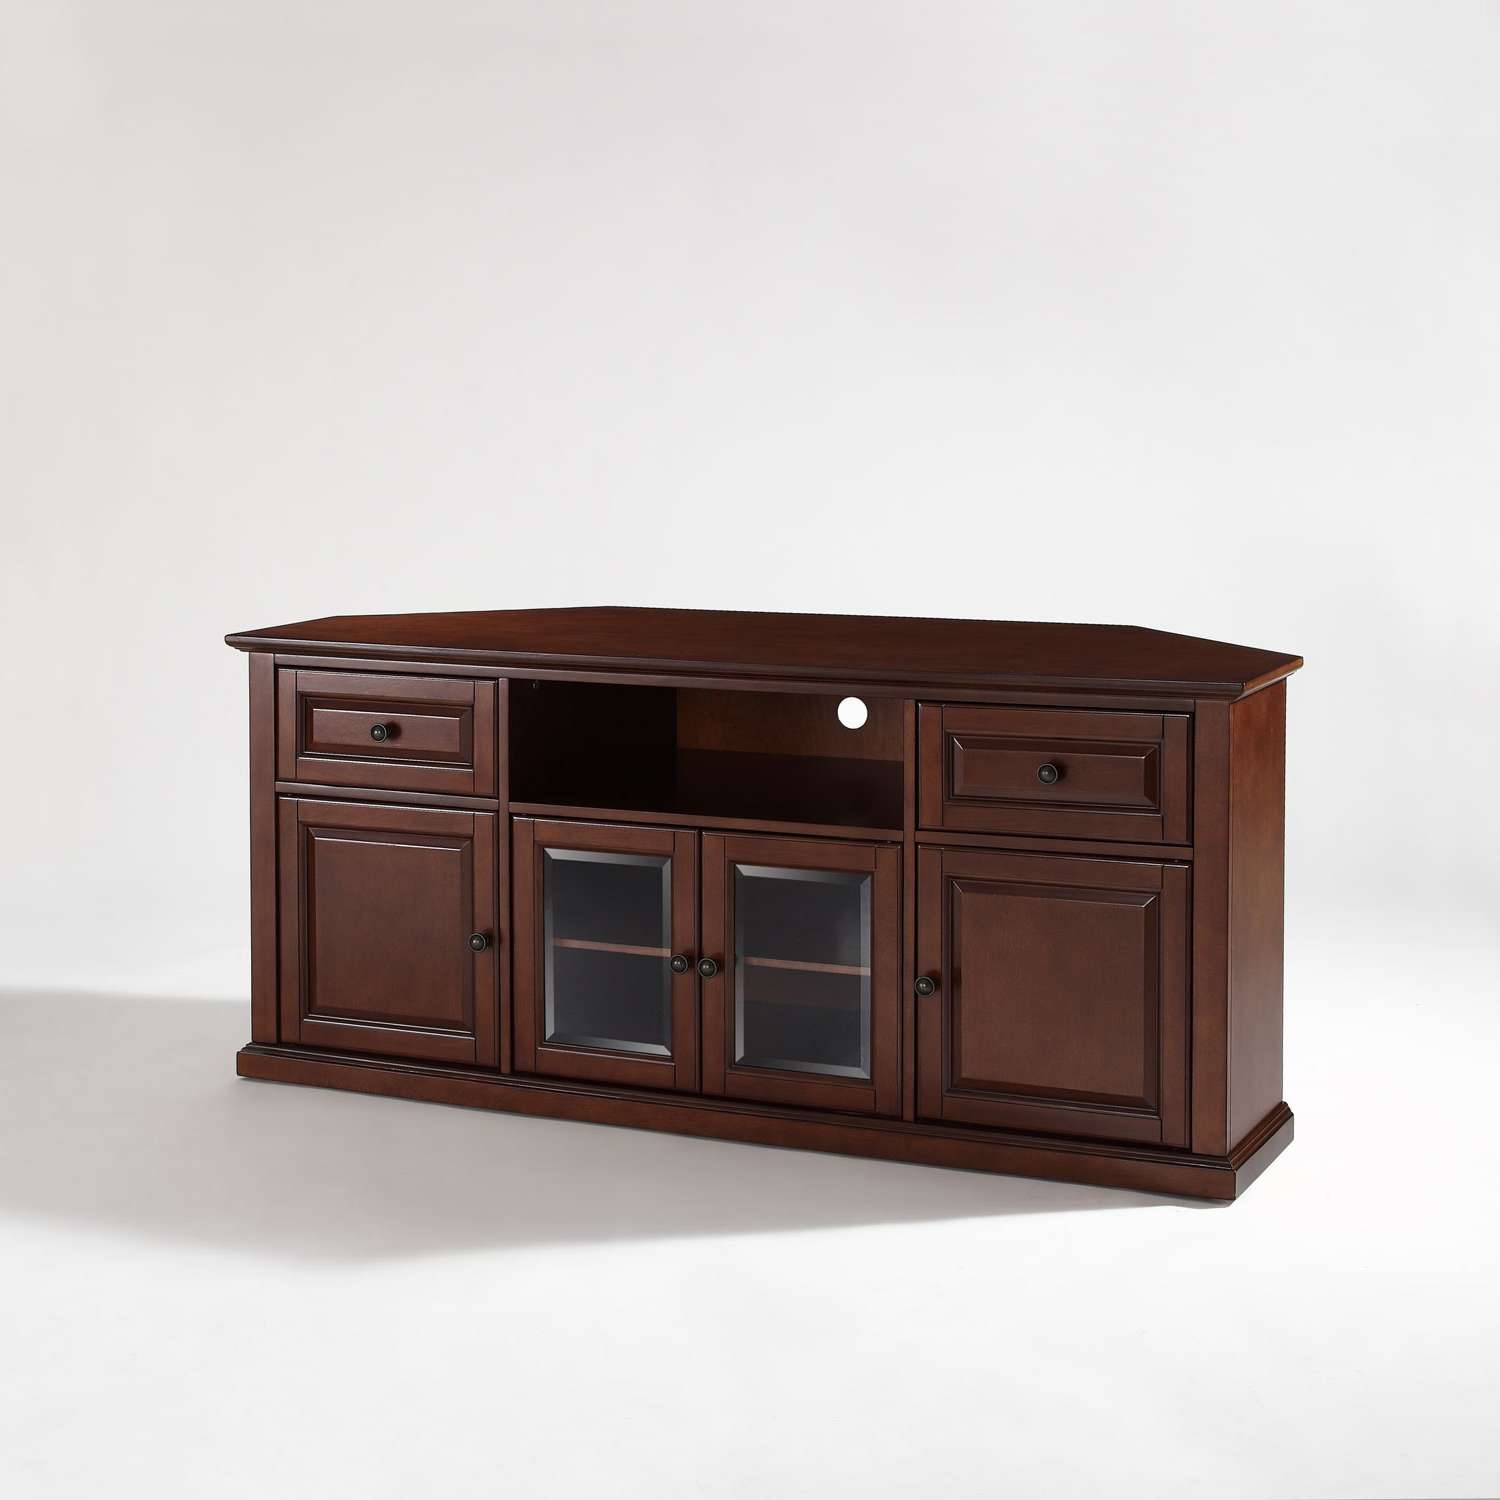 60 Inch Corner Tv Stand In Vintage Mahogany Crosley Furniture Intended For Corner Tv Stands (View 4 of 15)